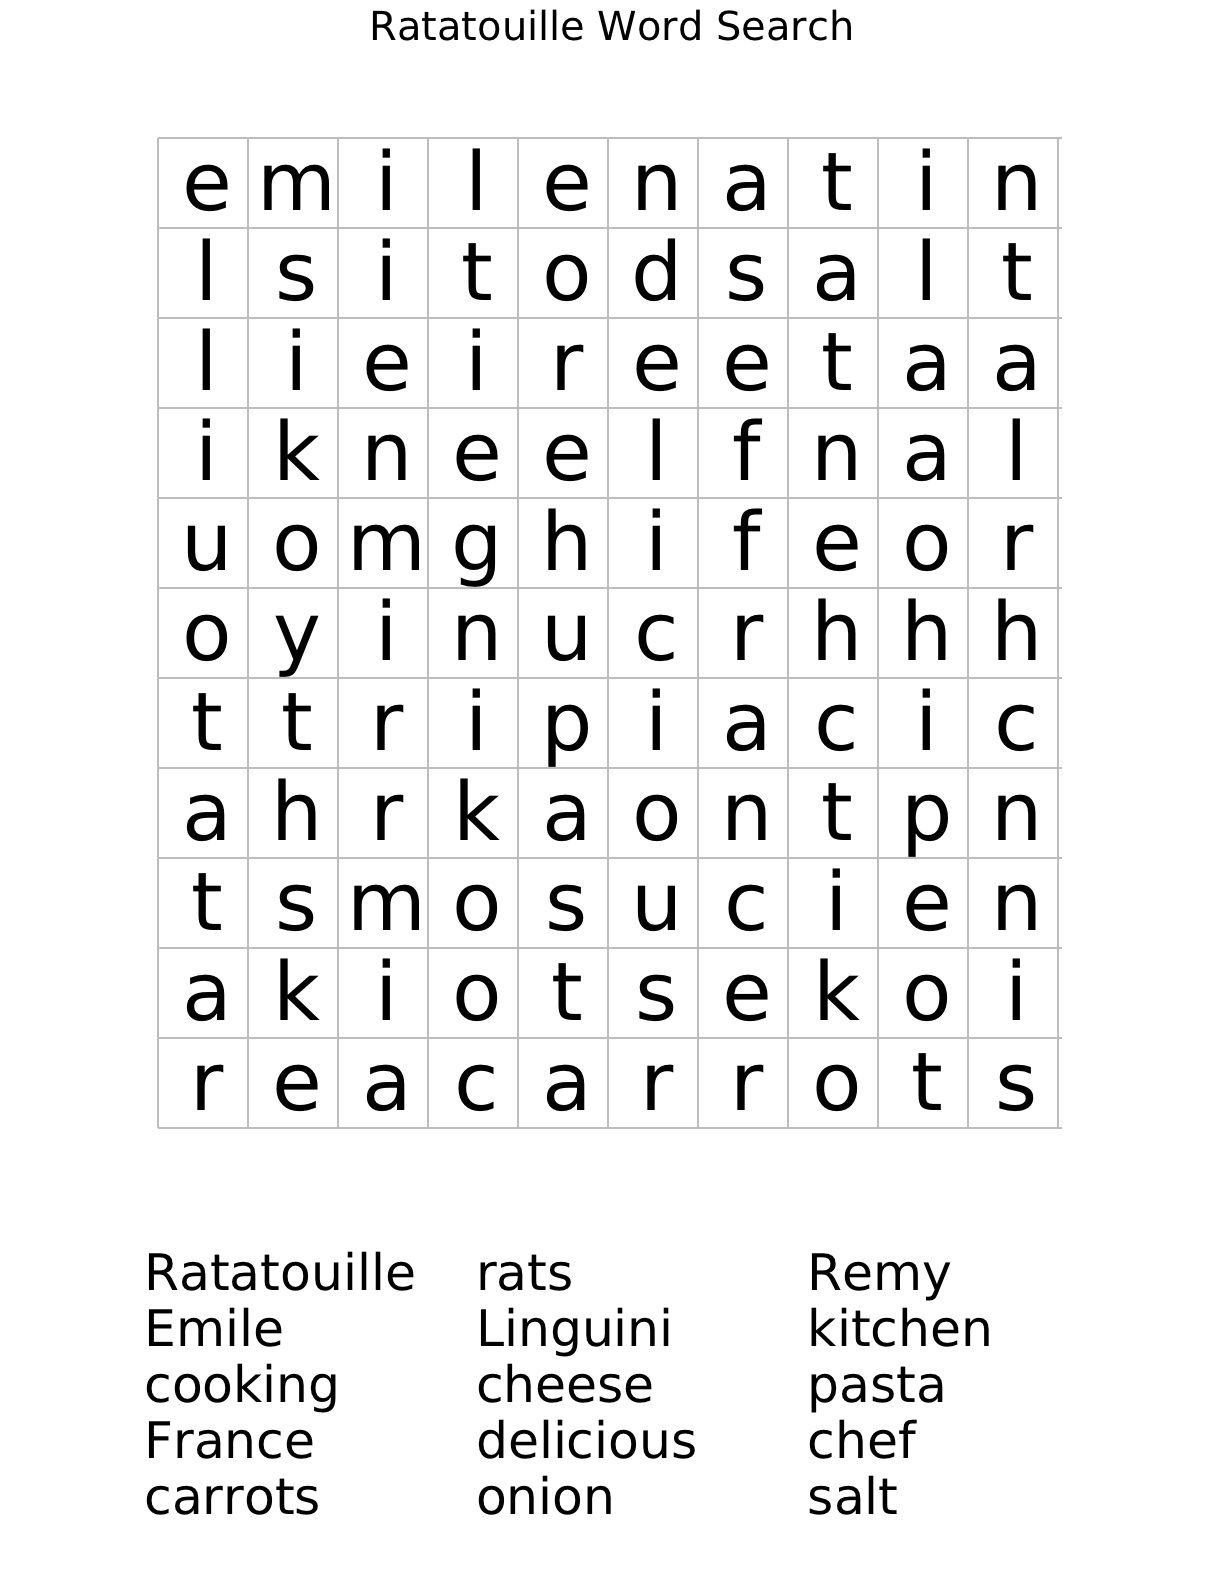 math worksheet : ratatouille word search worksheet  free math worksheets  : 4th Grade Math Worksheets Printable